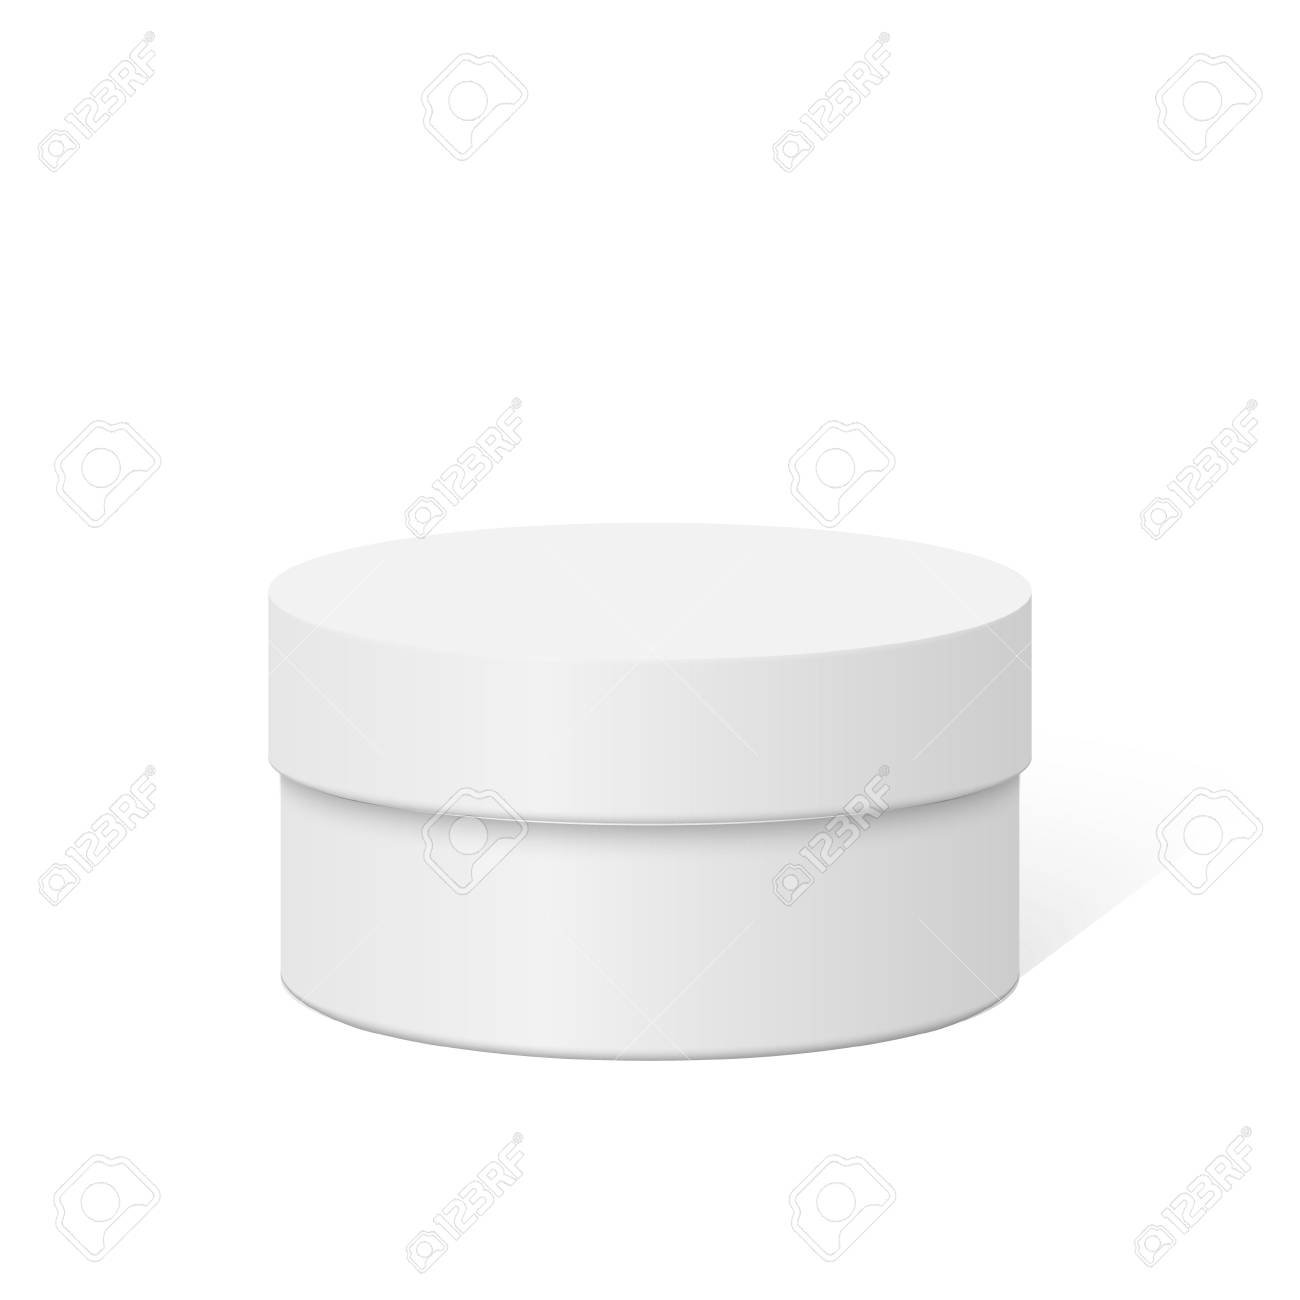 Plastic round container box package design illustration template - 123026057